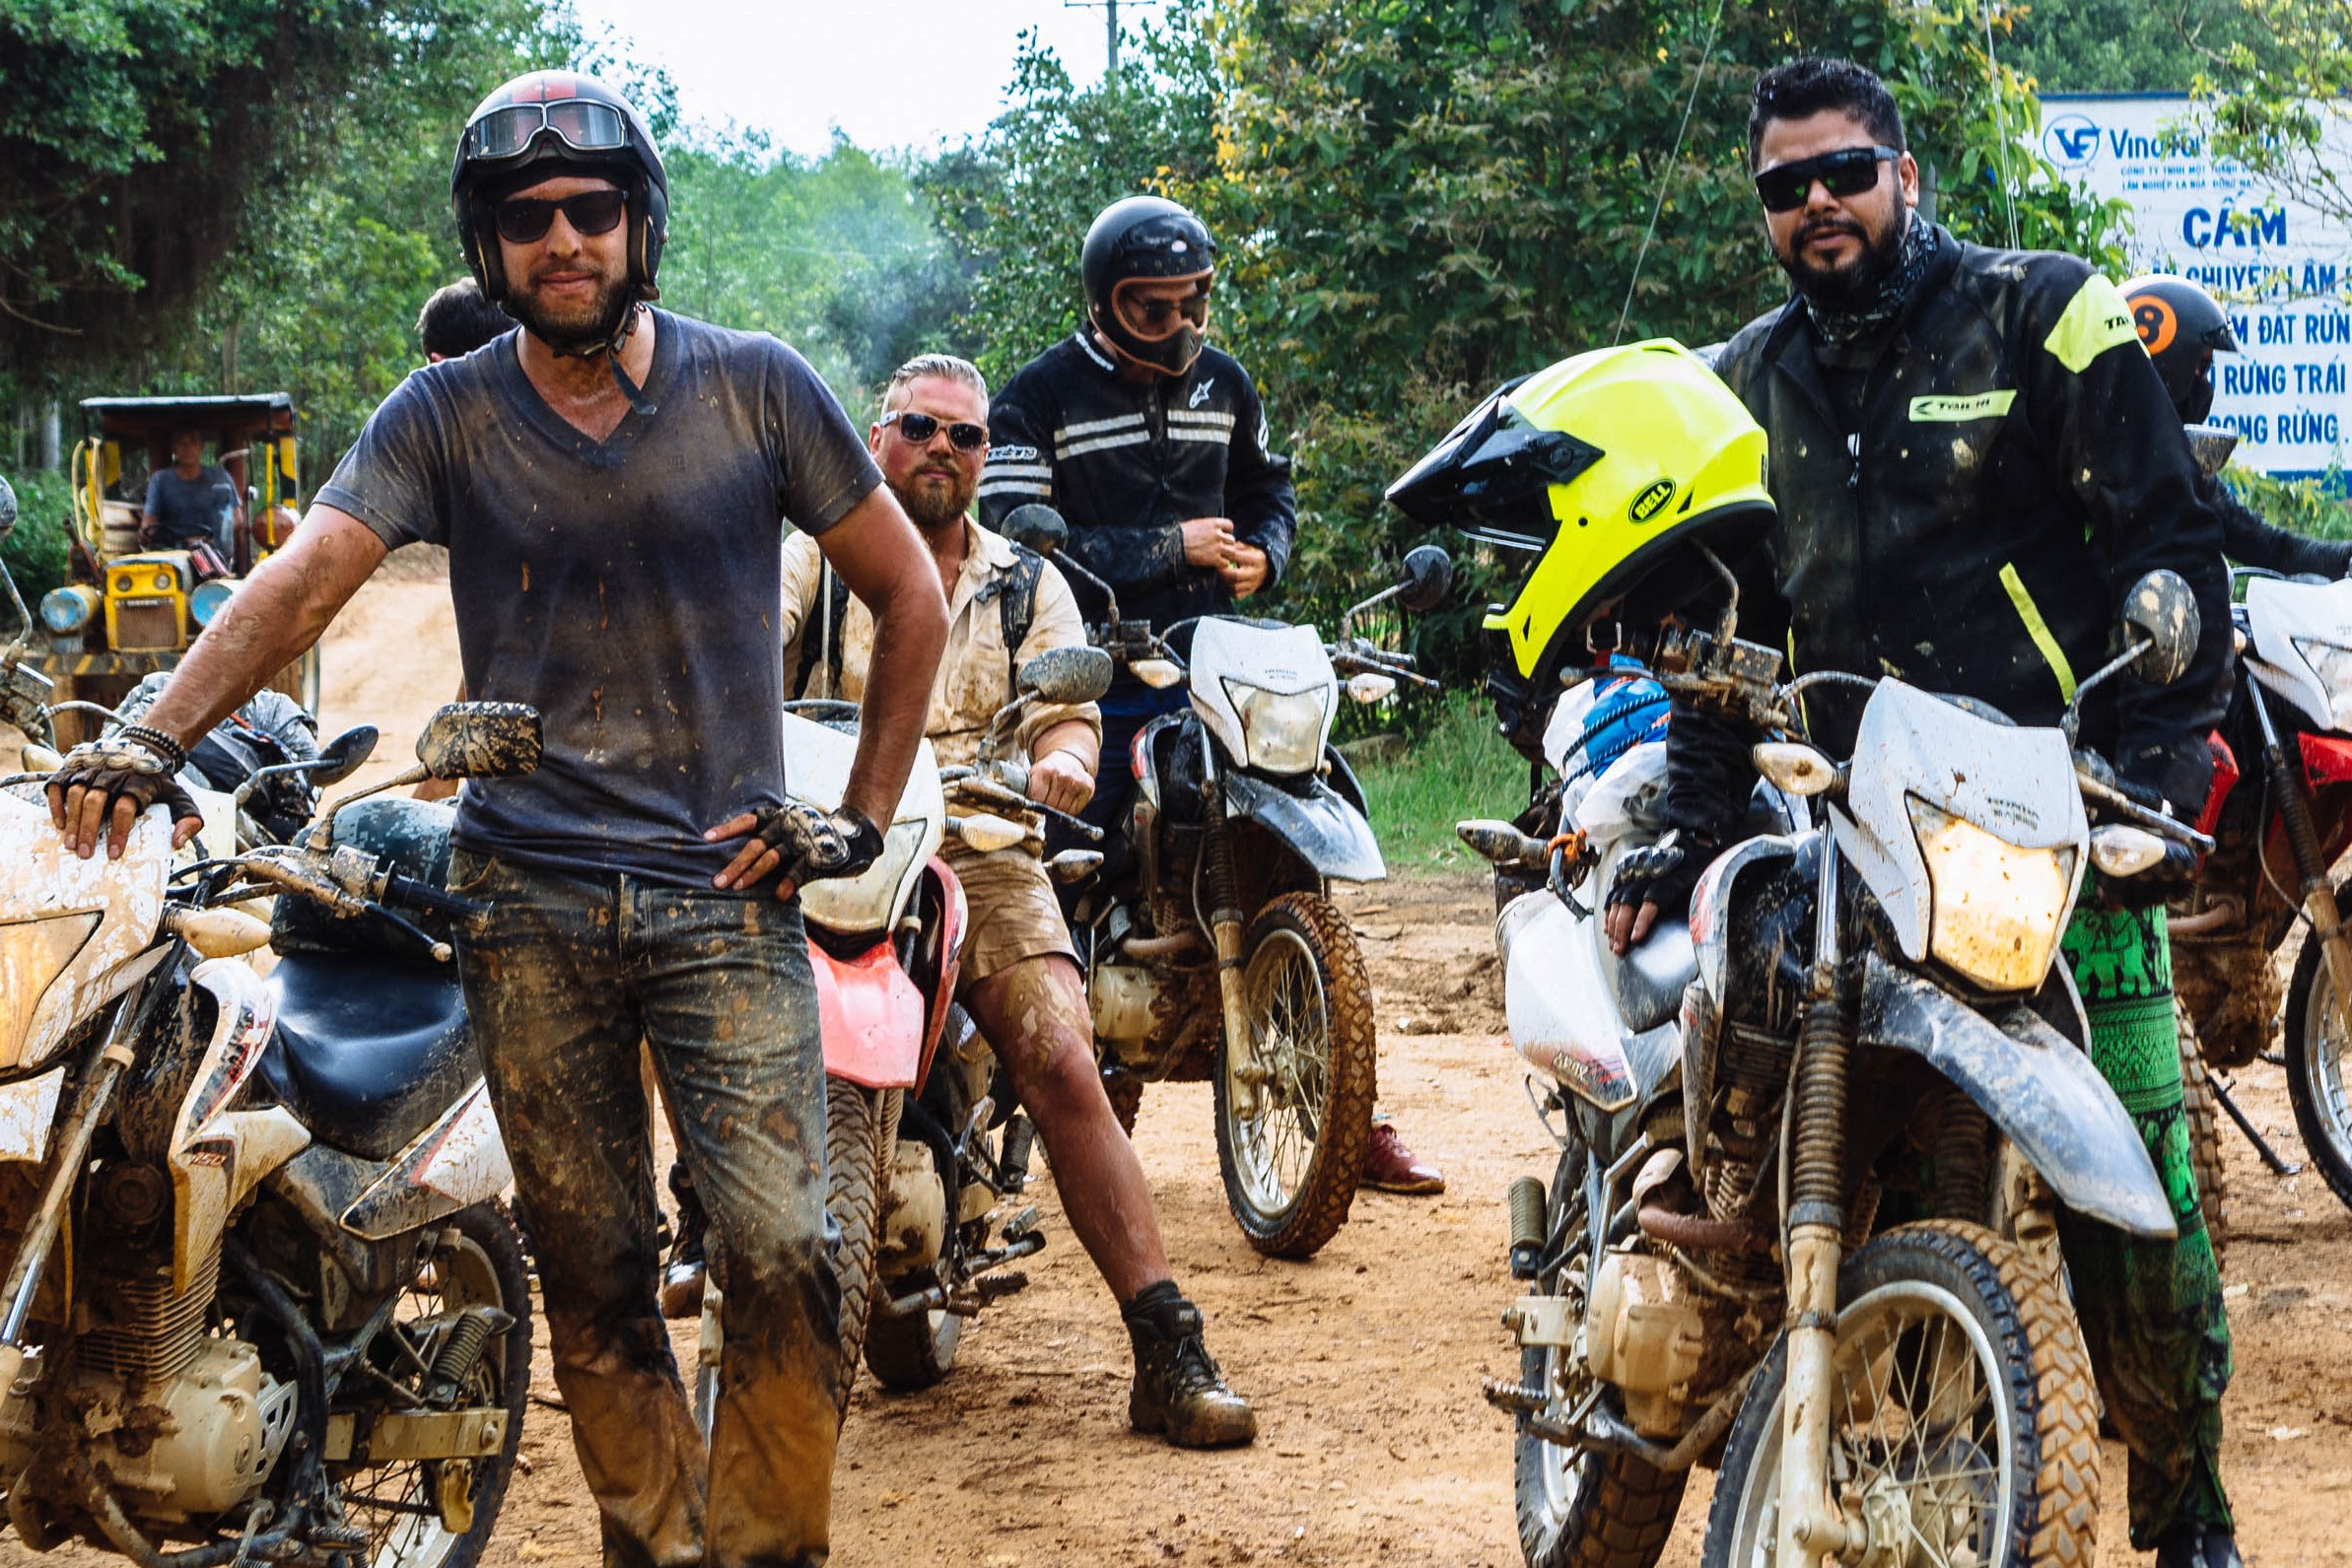 Motorbike helmet and clothing: the best tips to ride a motorcycle in Vietnam